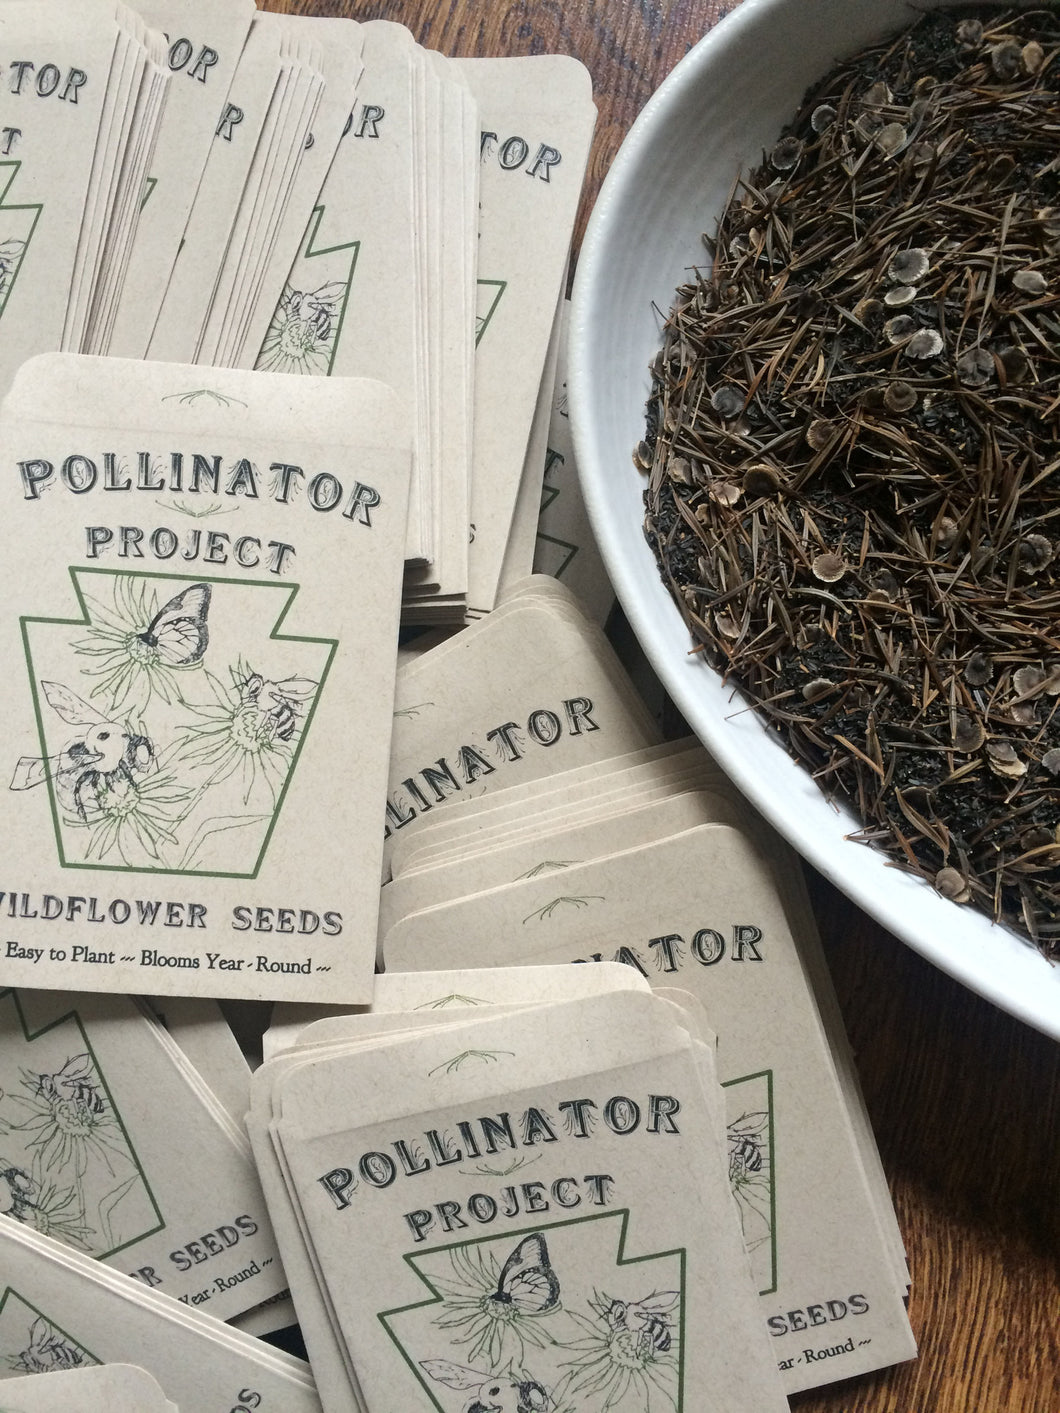 **TRIPLE PACK of Dye Flower Seeds from Pollinator Project and bedhead fiber**